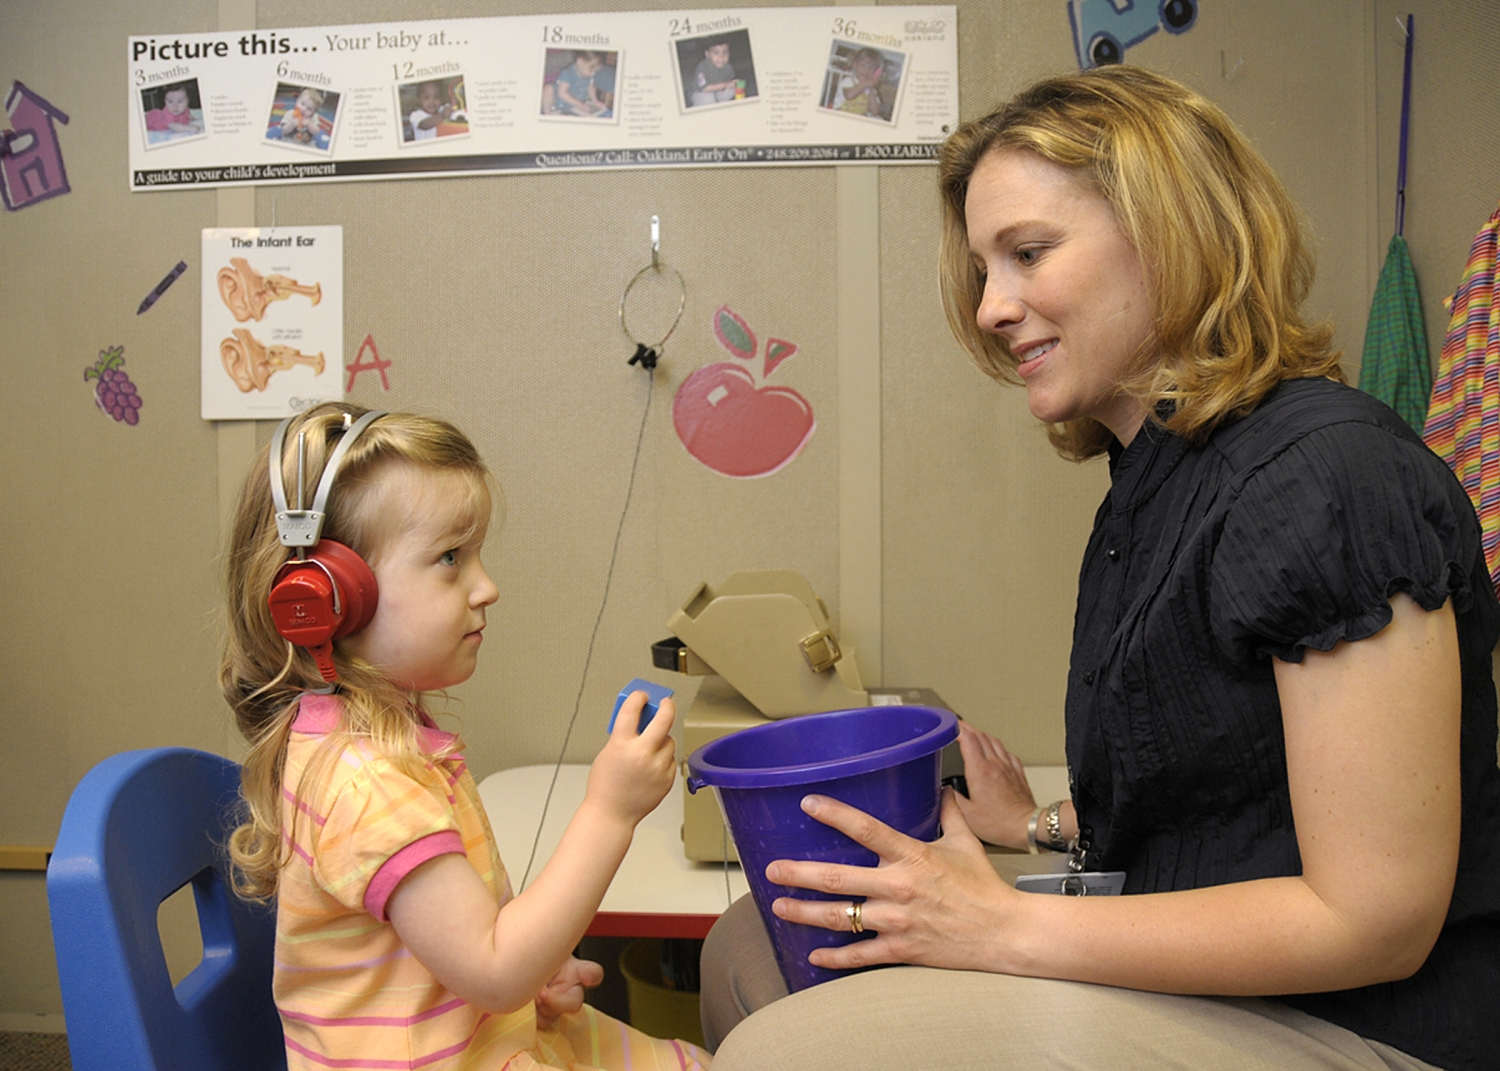 We provide comprehensive services from general hearing testing to specialized care.